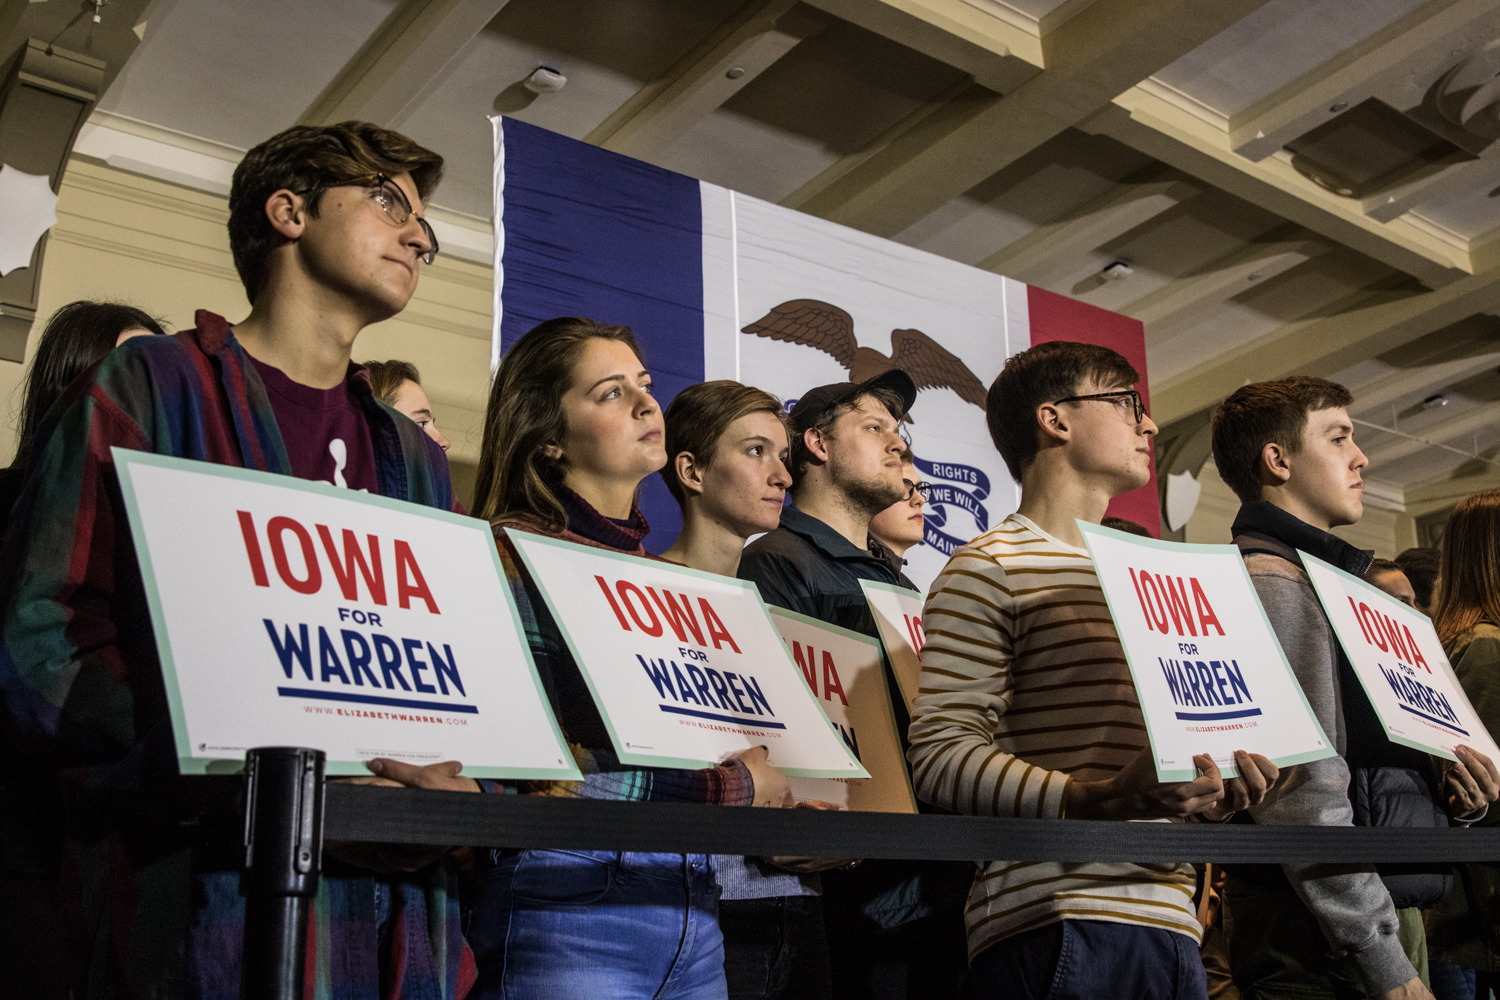 Supporters+for+Sen.+Elizabeth+Warren+gather+during+a+campaign+rally+in+the+IMU+on+Sunday%2C+February+10%2C+2019.